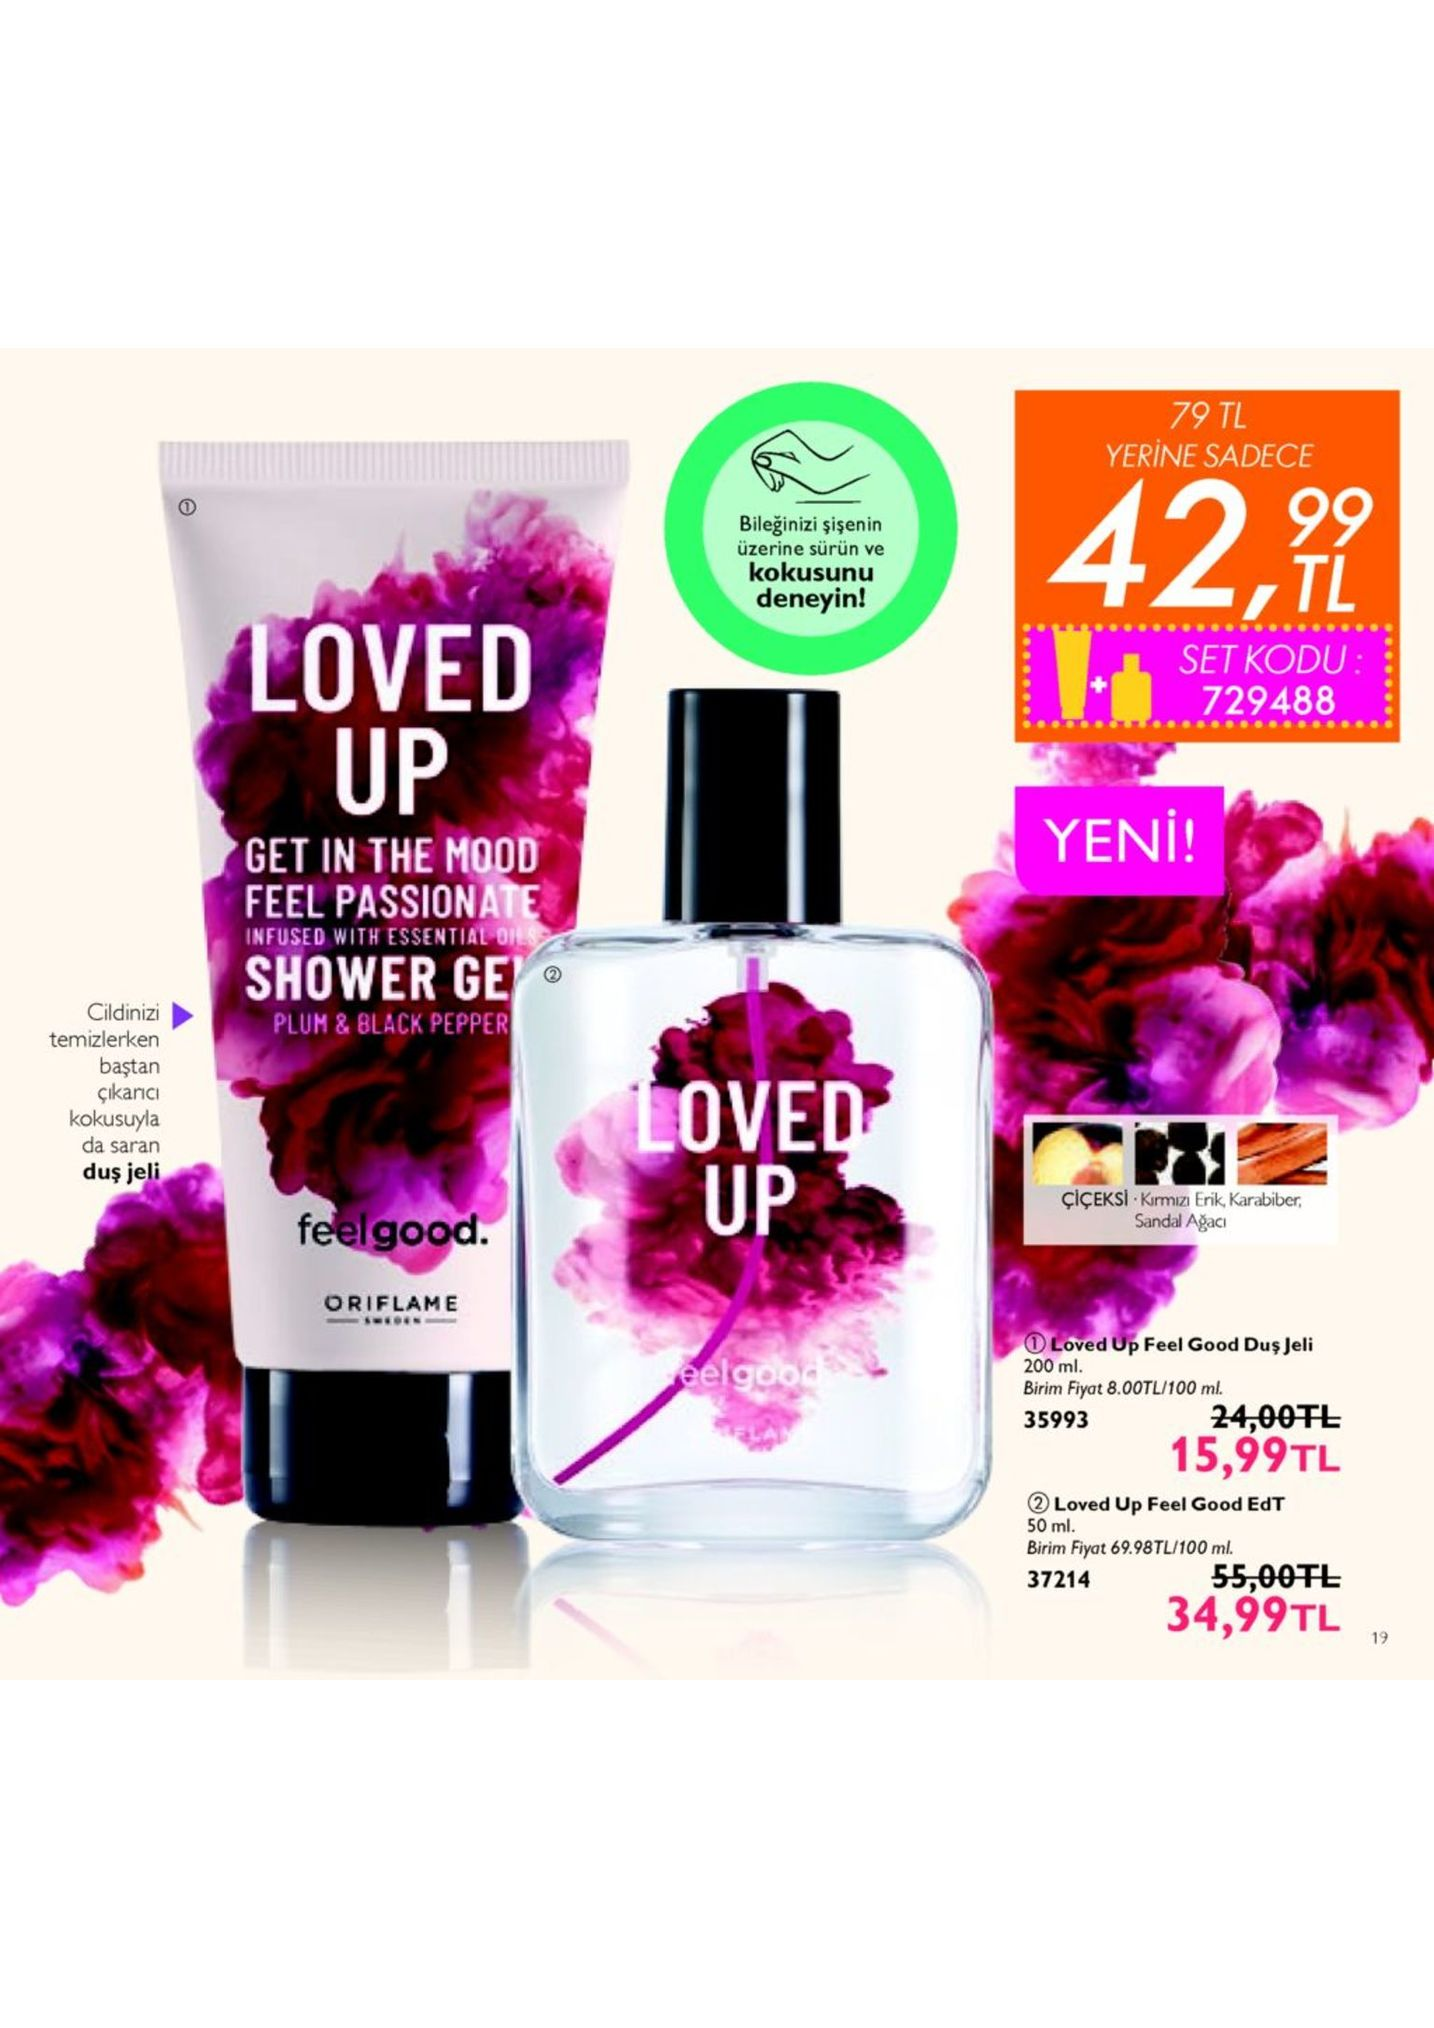 79 tl yerine sadece 429 bileğinizi şişenin üzerine sürün ve kokusunu deneyin! tl loved up set kodu : 729488 yeni! get in the mood feel passiona infused with essential on shower ge cildinizi plum & black pepper temizlerken baştan çikancı kokusuyla da saran duş jeli ove up çiçeksi . kırmızı e rik, karabiber, sandal ağaci feelgood. oriflame ① loved up feel good duş jeli 200 ml. birim fiyat 8.00tl/100 ml. 35993 24,00tl 15,99tl ② loved up feel good edt 50 ml. birim fiyat 69.98tl/100 m 37214 55,00干し 34,99tl1